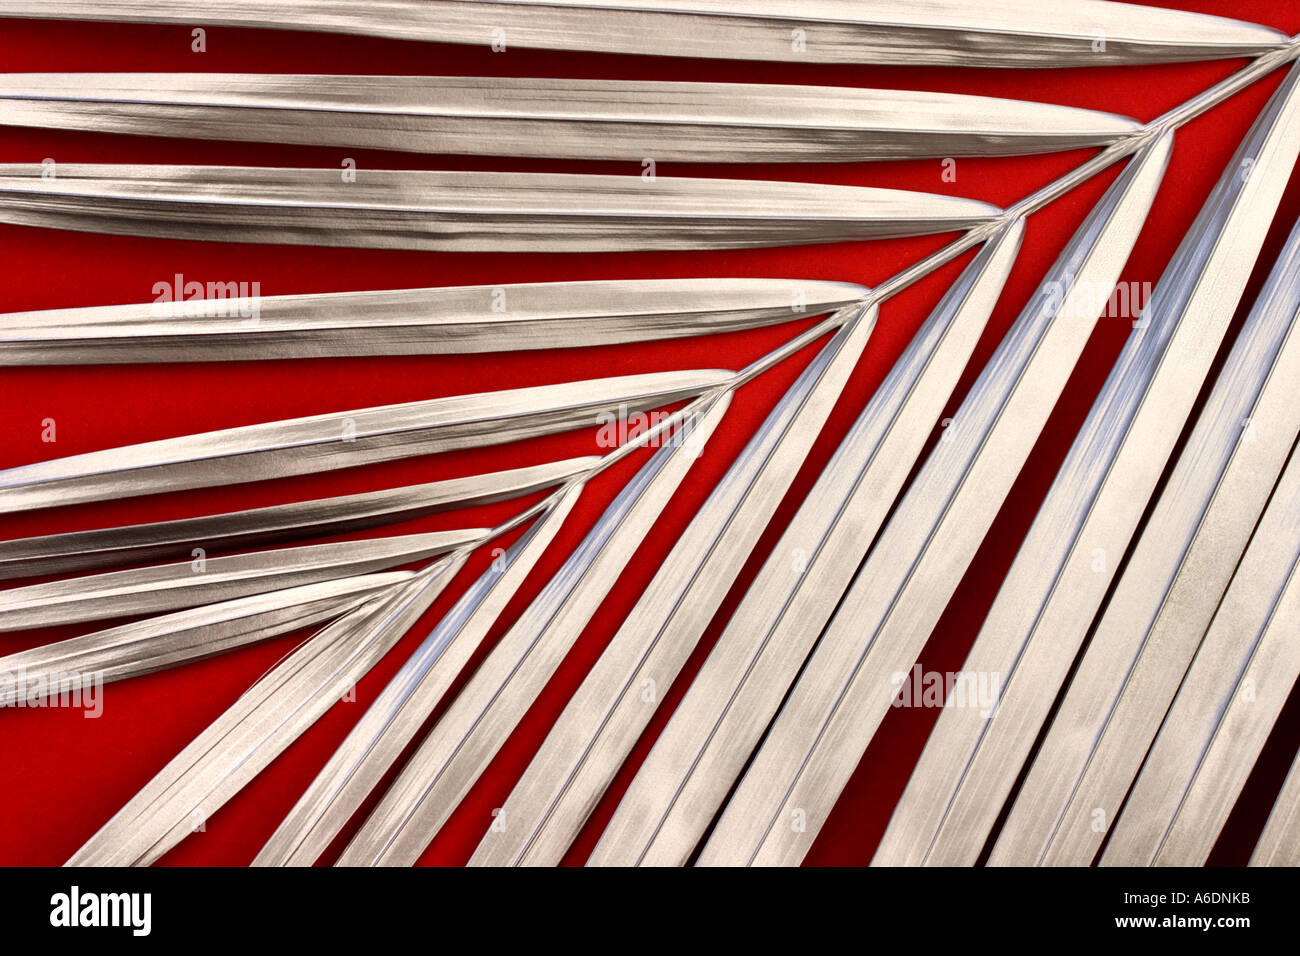 SILVER PALM FROND  RED BACKGROUND HORIZONTAL BAPDB6000 - Stock Image